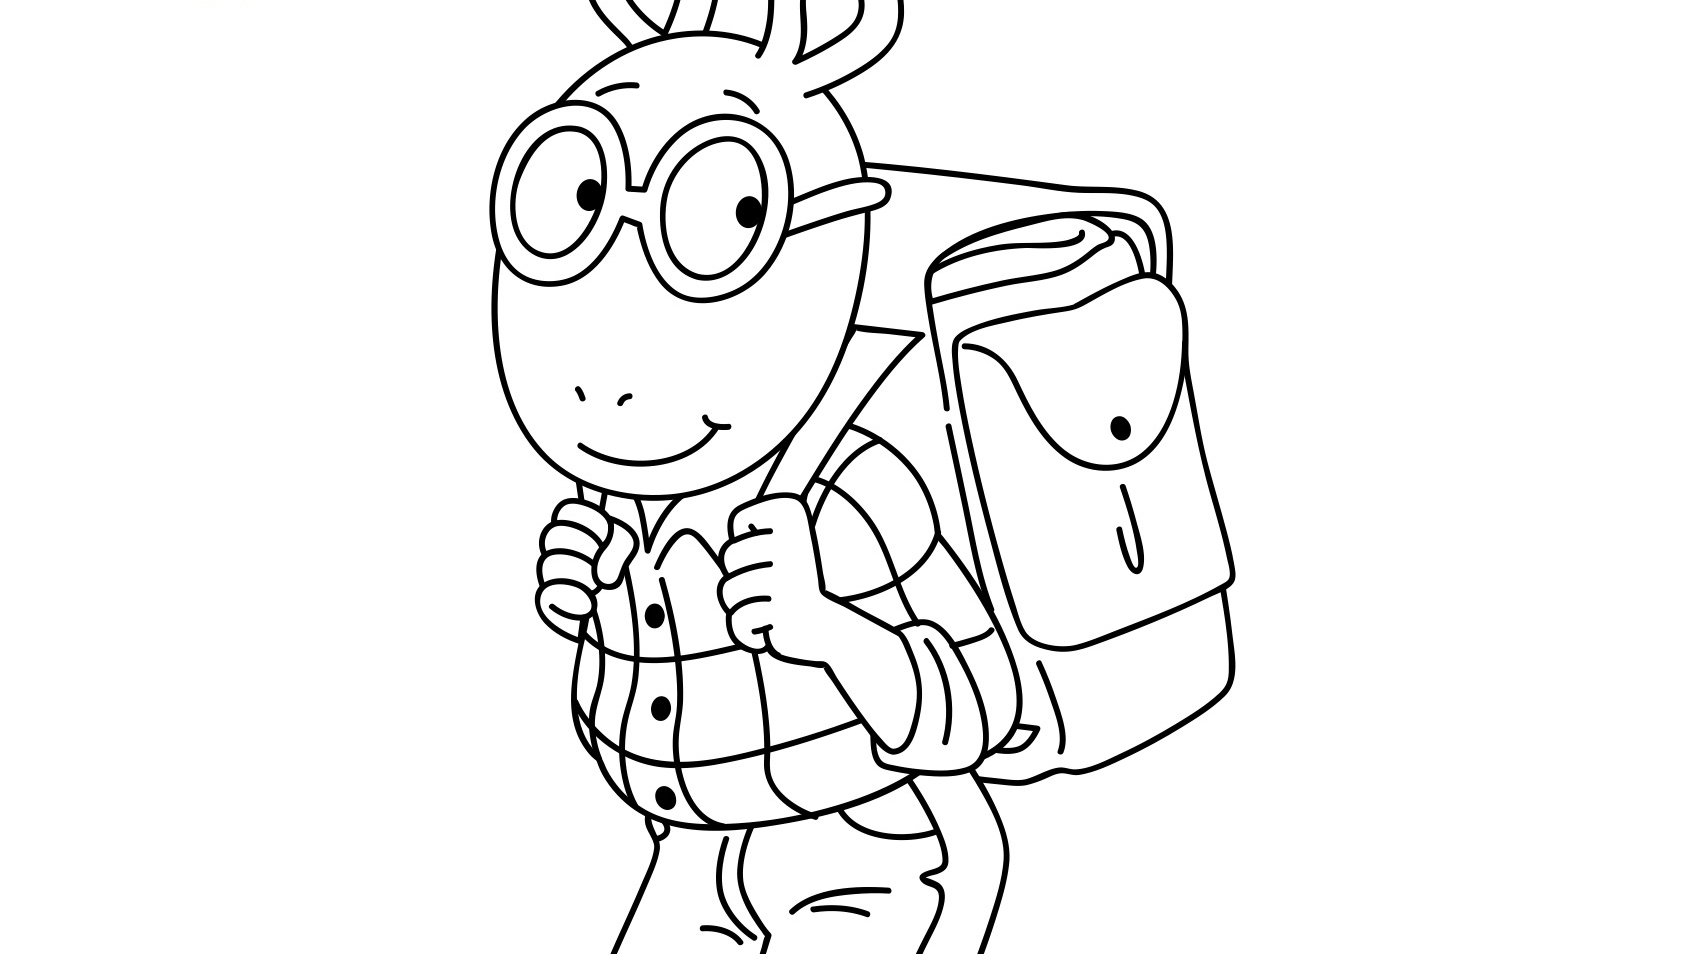 Arthur Read Coloring Page - Free Printable Coloring Pages for Kids   954x1700